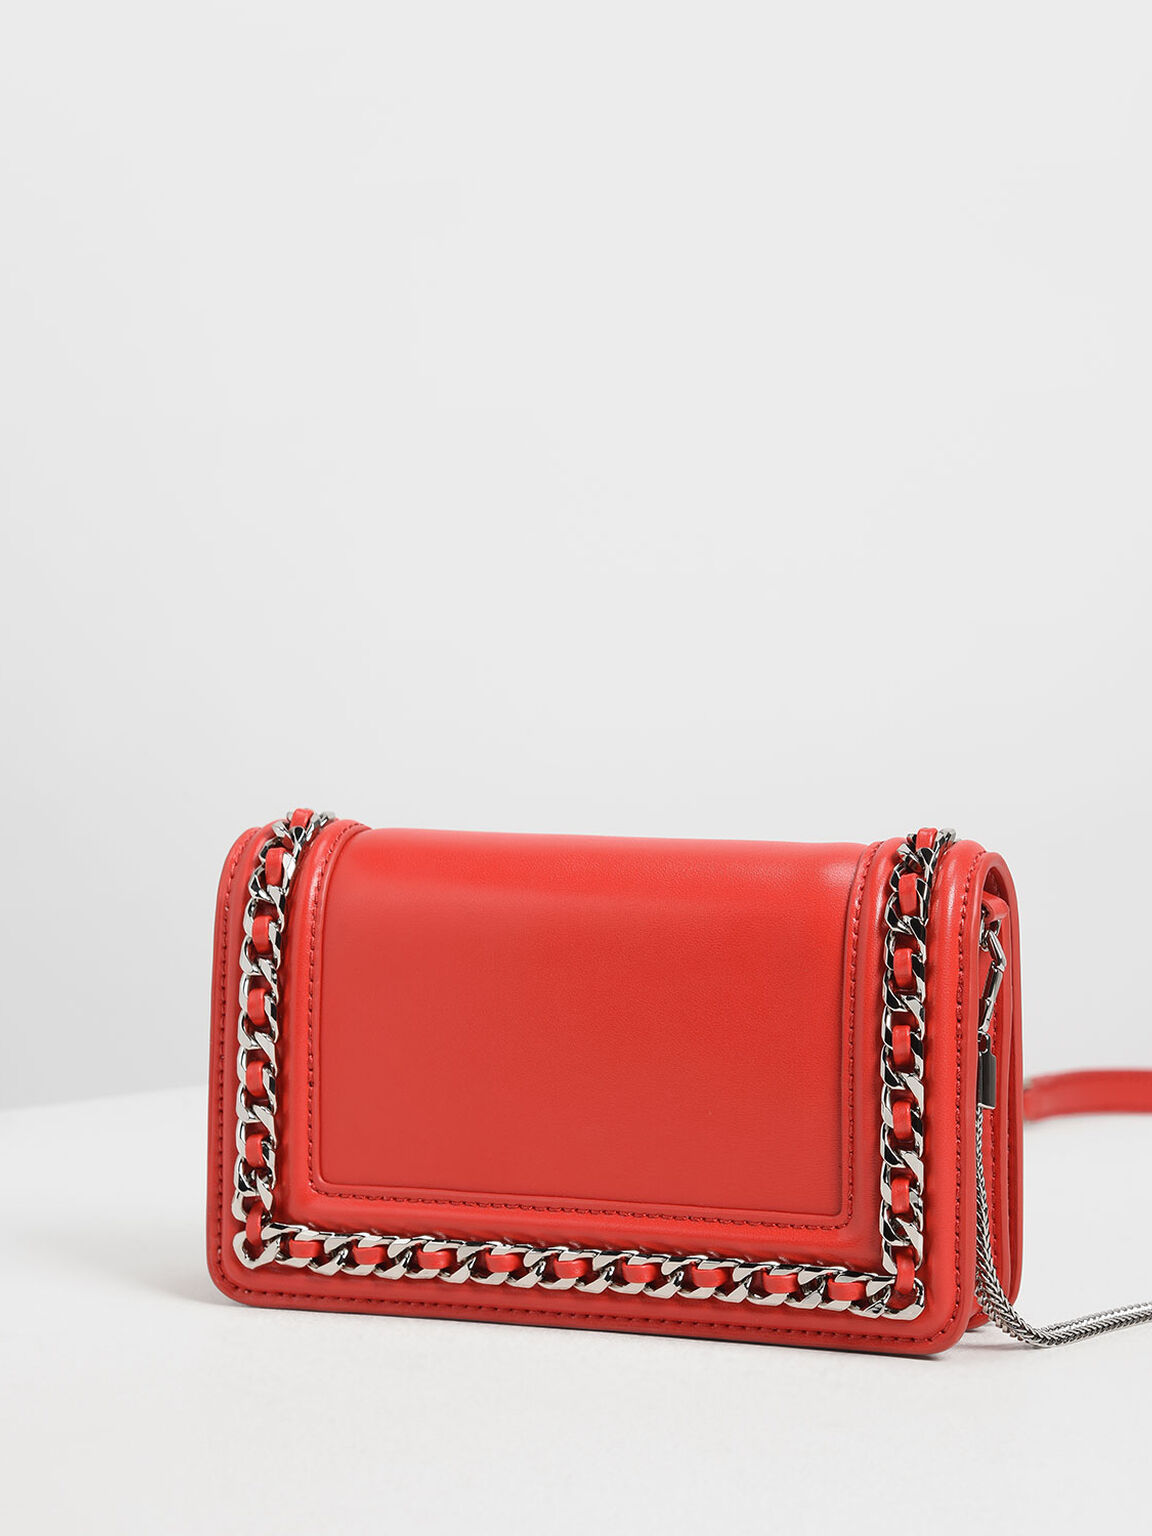 Chain Detail Clutch, Red, hi-res